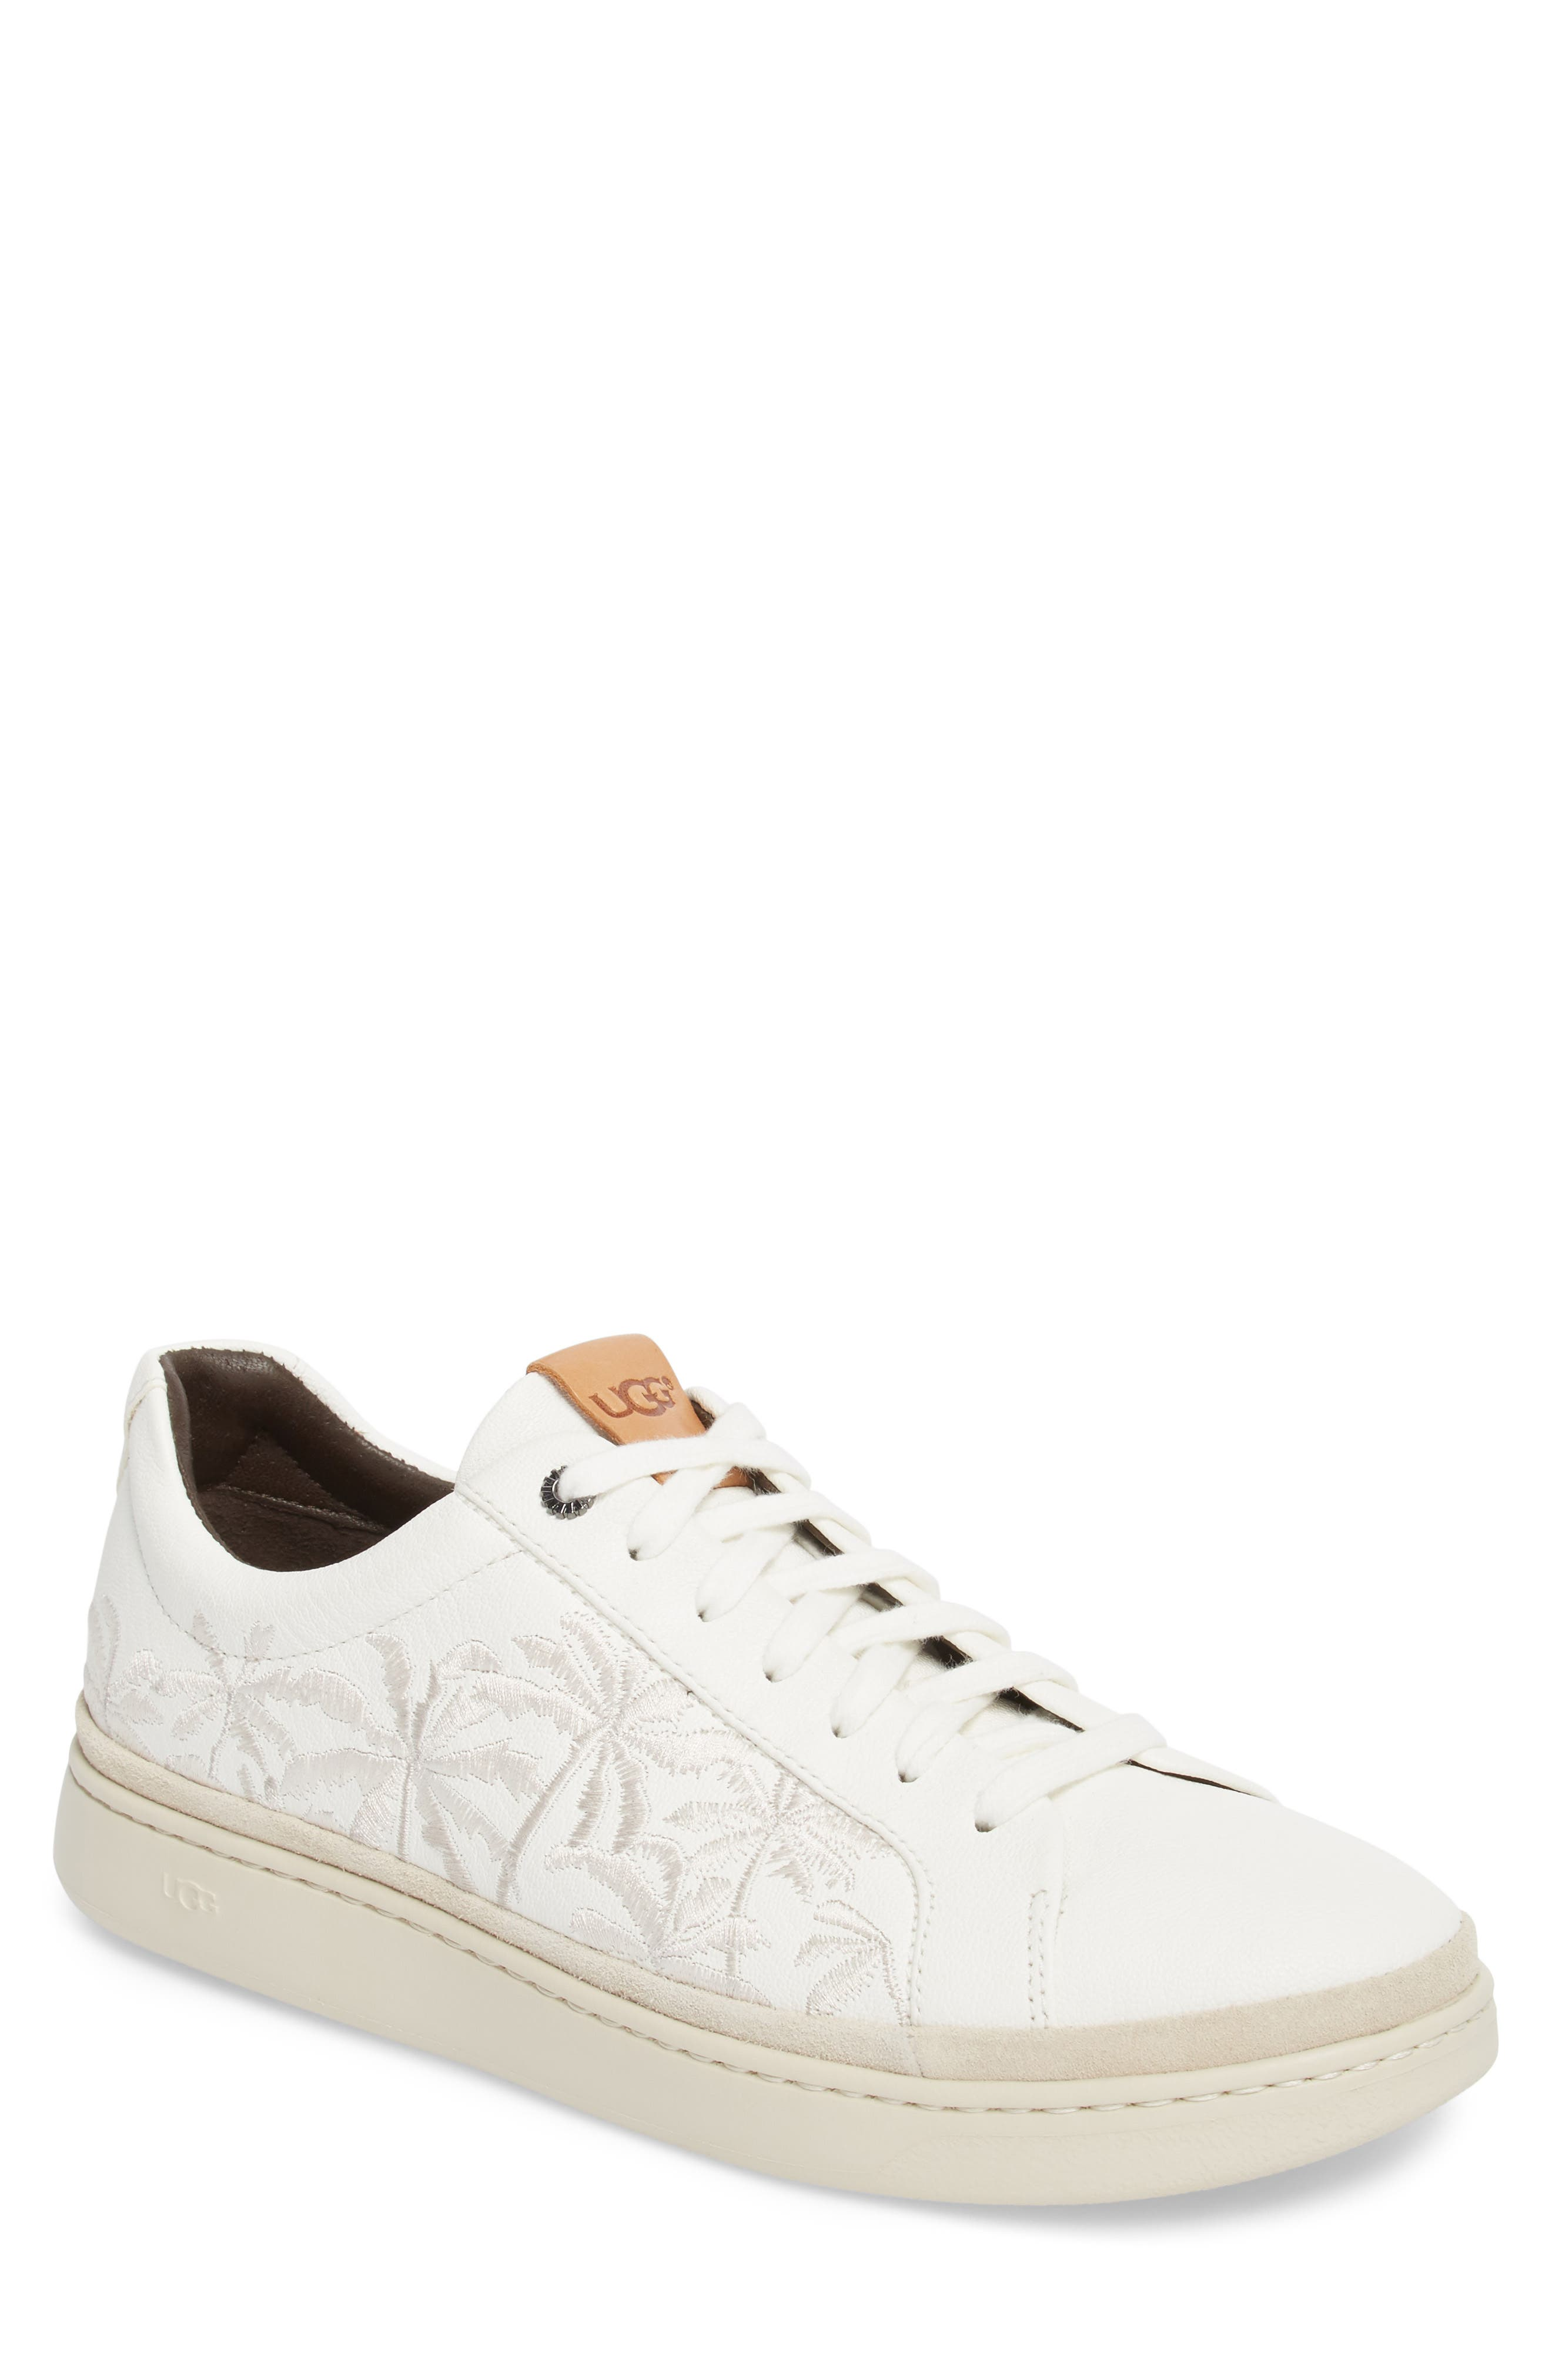 Palm Embroidered Sneaker,                         Main,                         color, White Leather